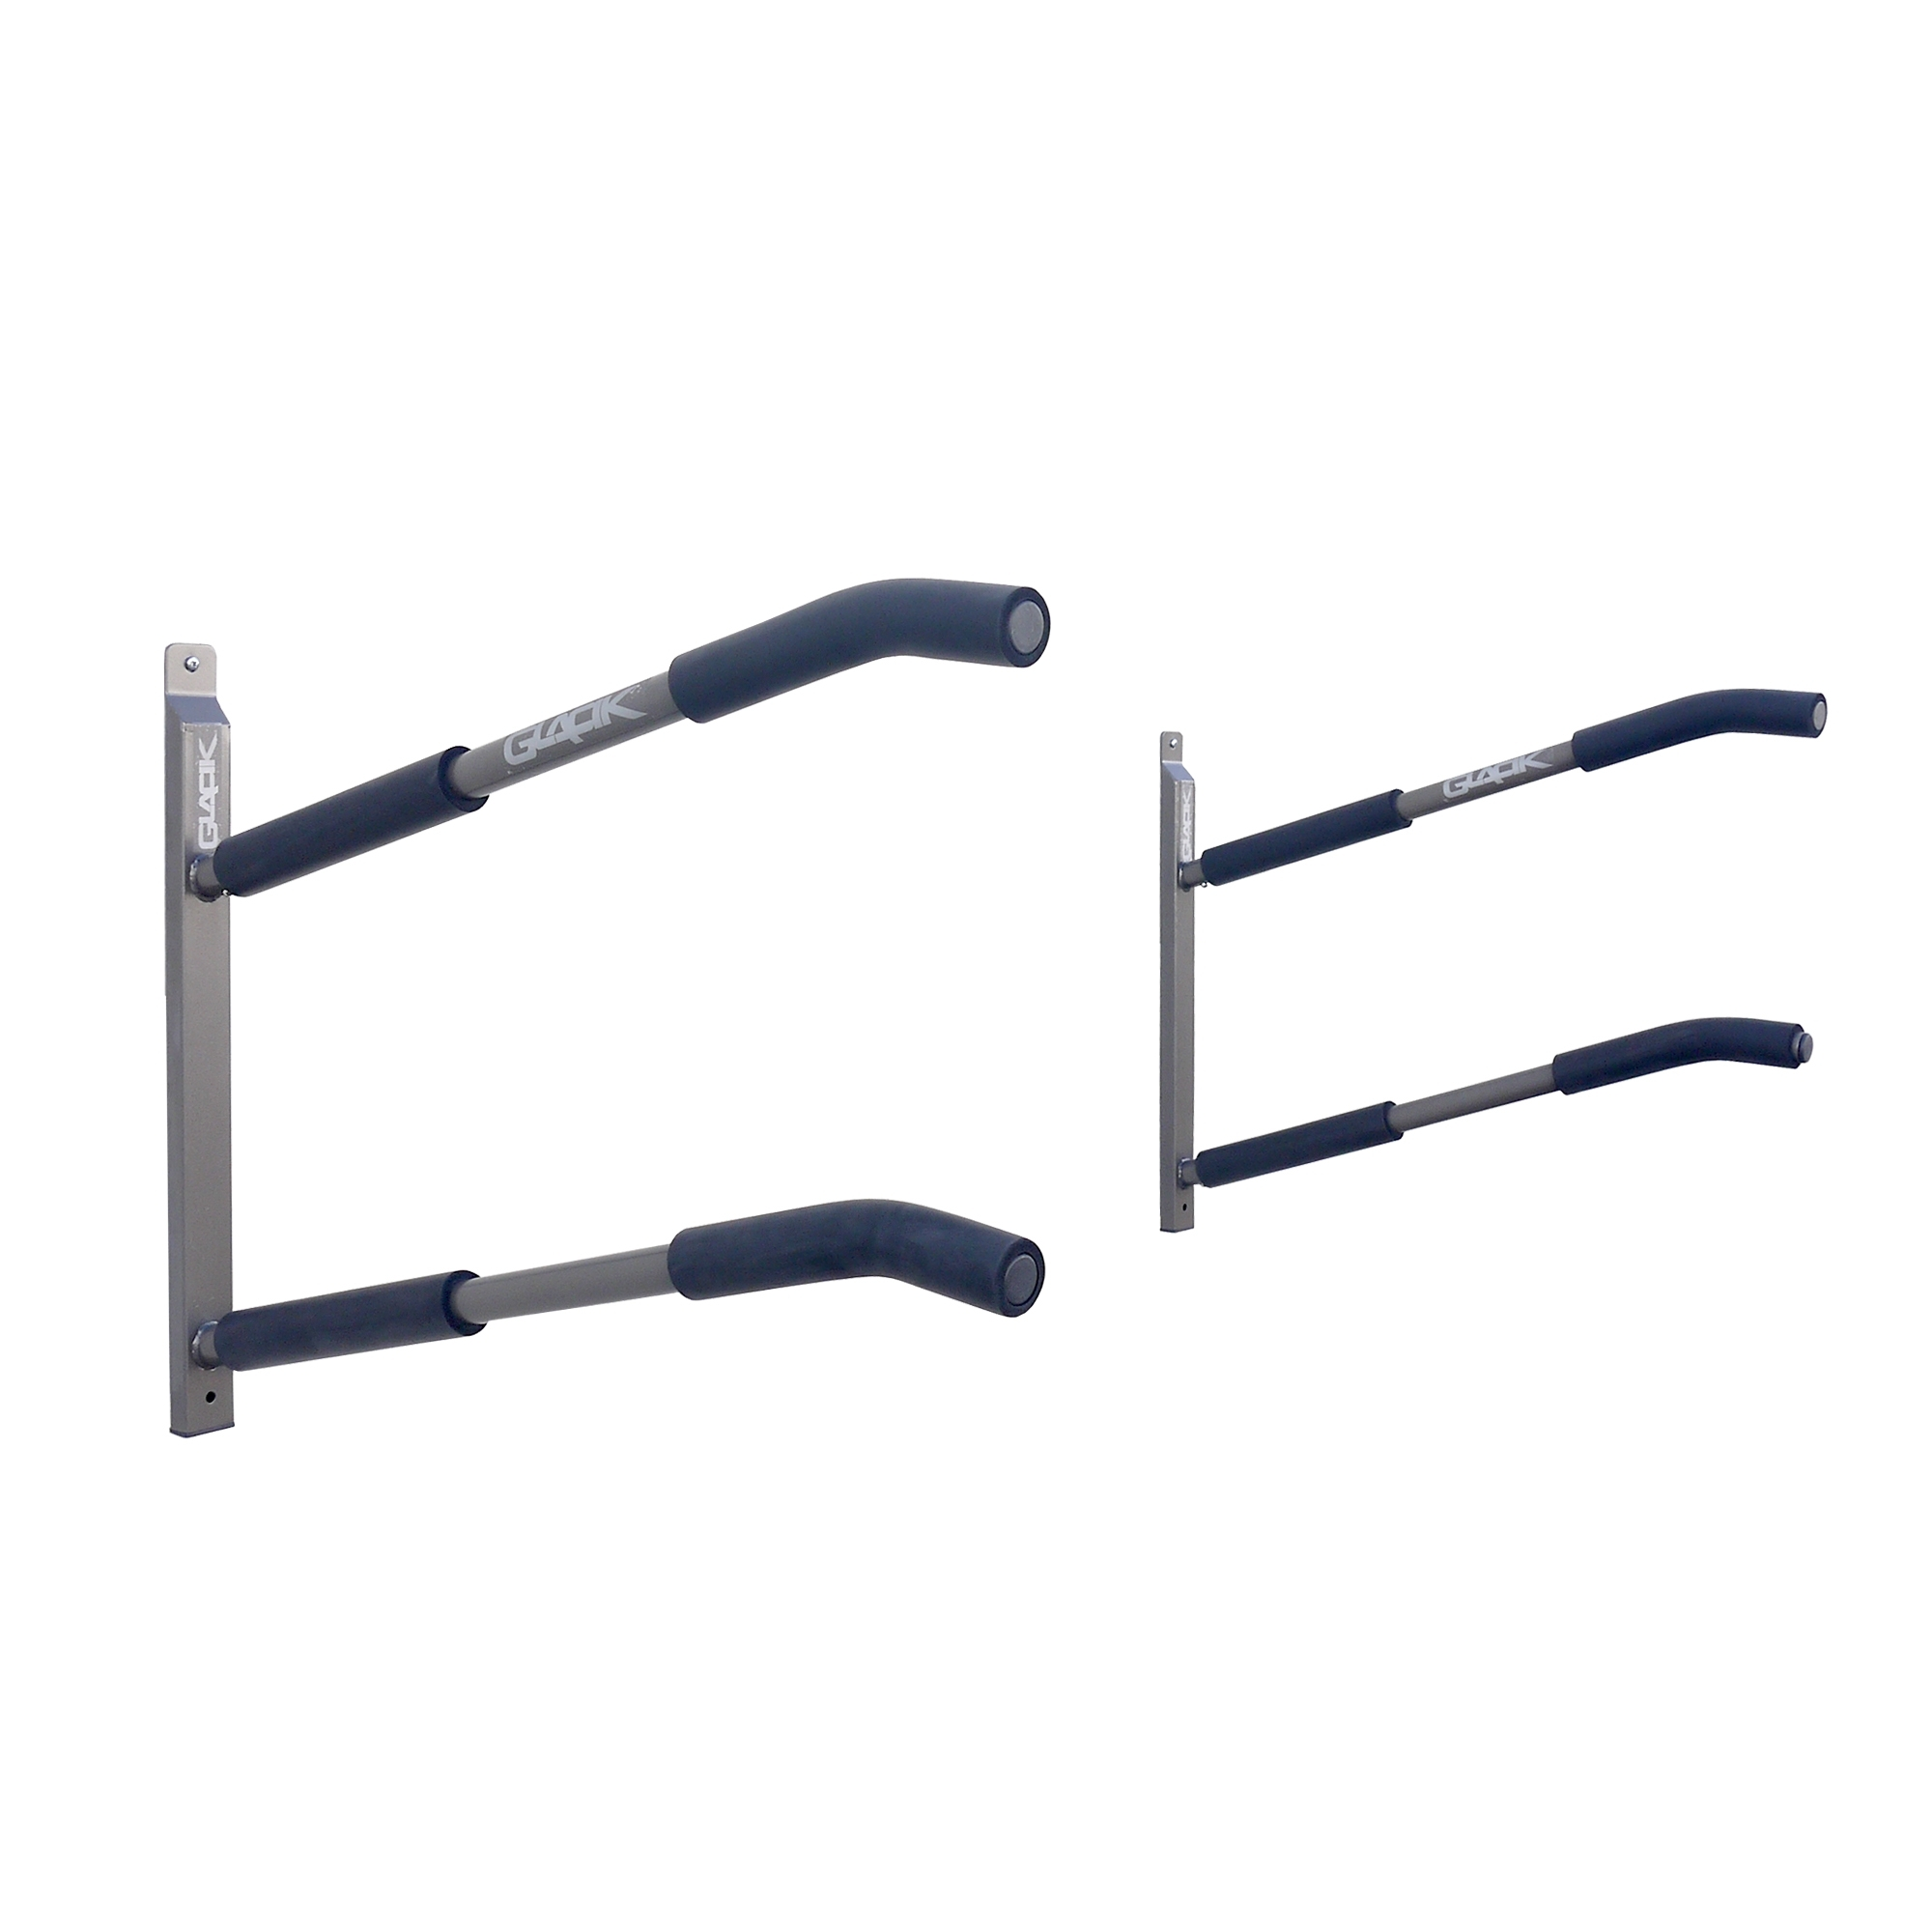 Bon Glacik G 62L Wall Mount Storage Rack For 2 SUP, By Sparehand Paddlesports